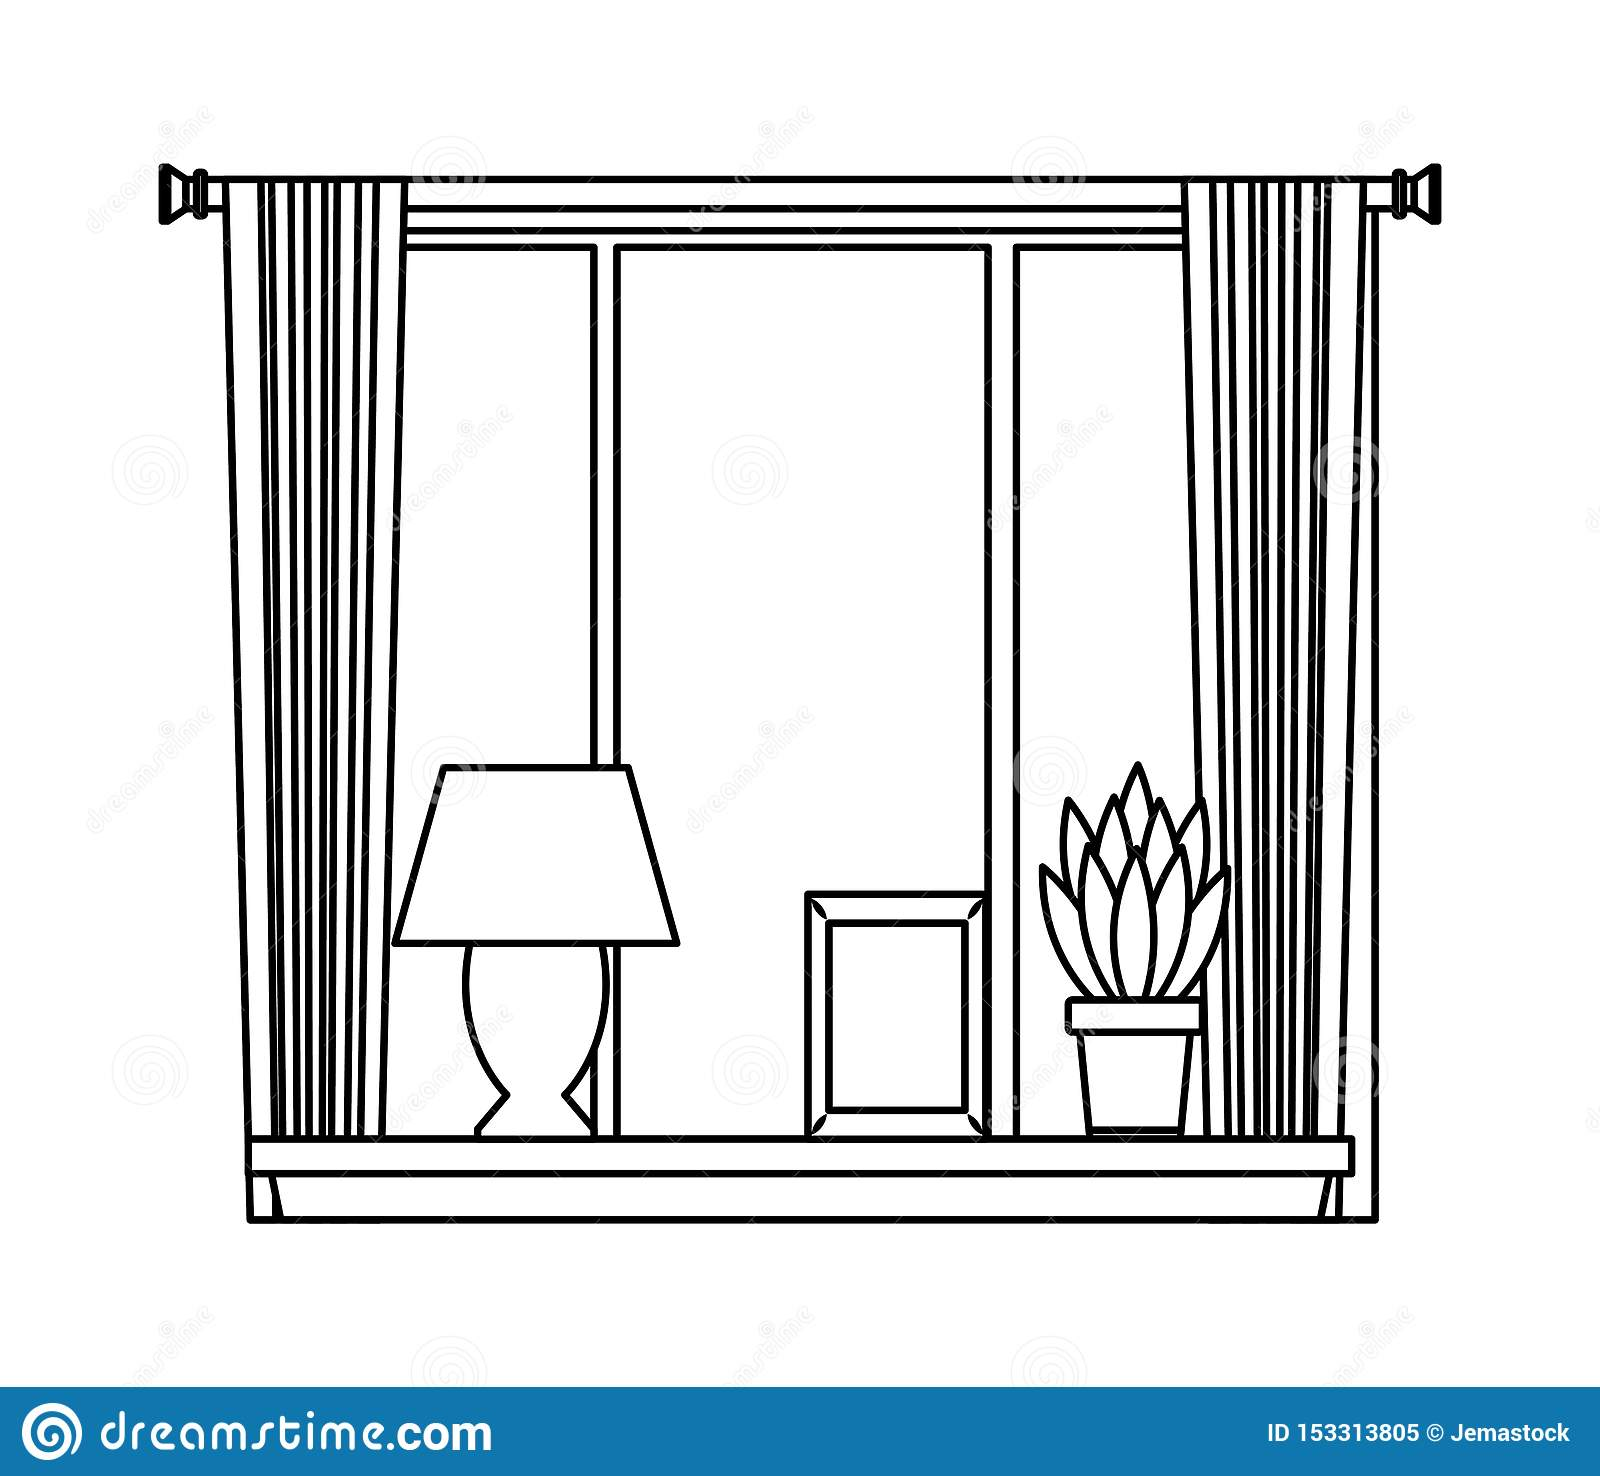 House window with light lamp picture and plant pot on shelf in black and white